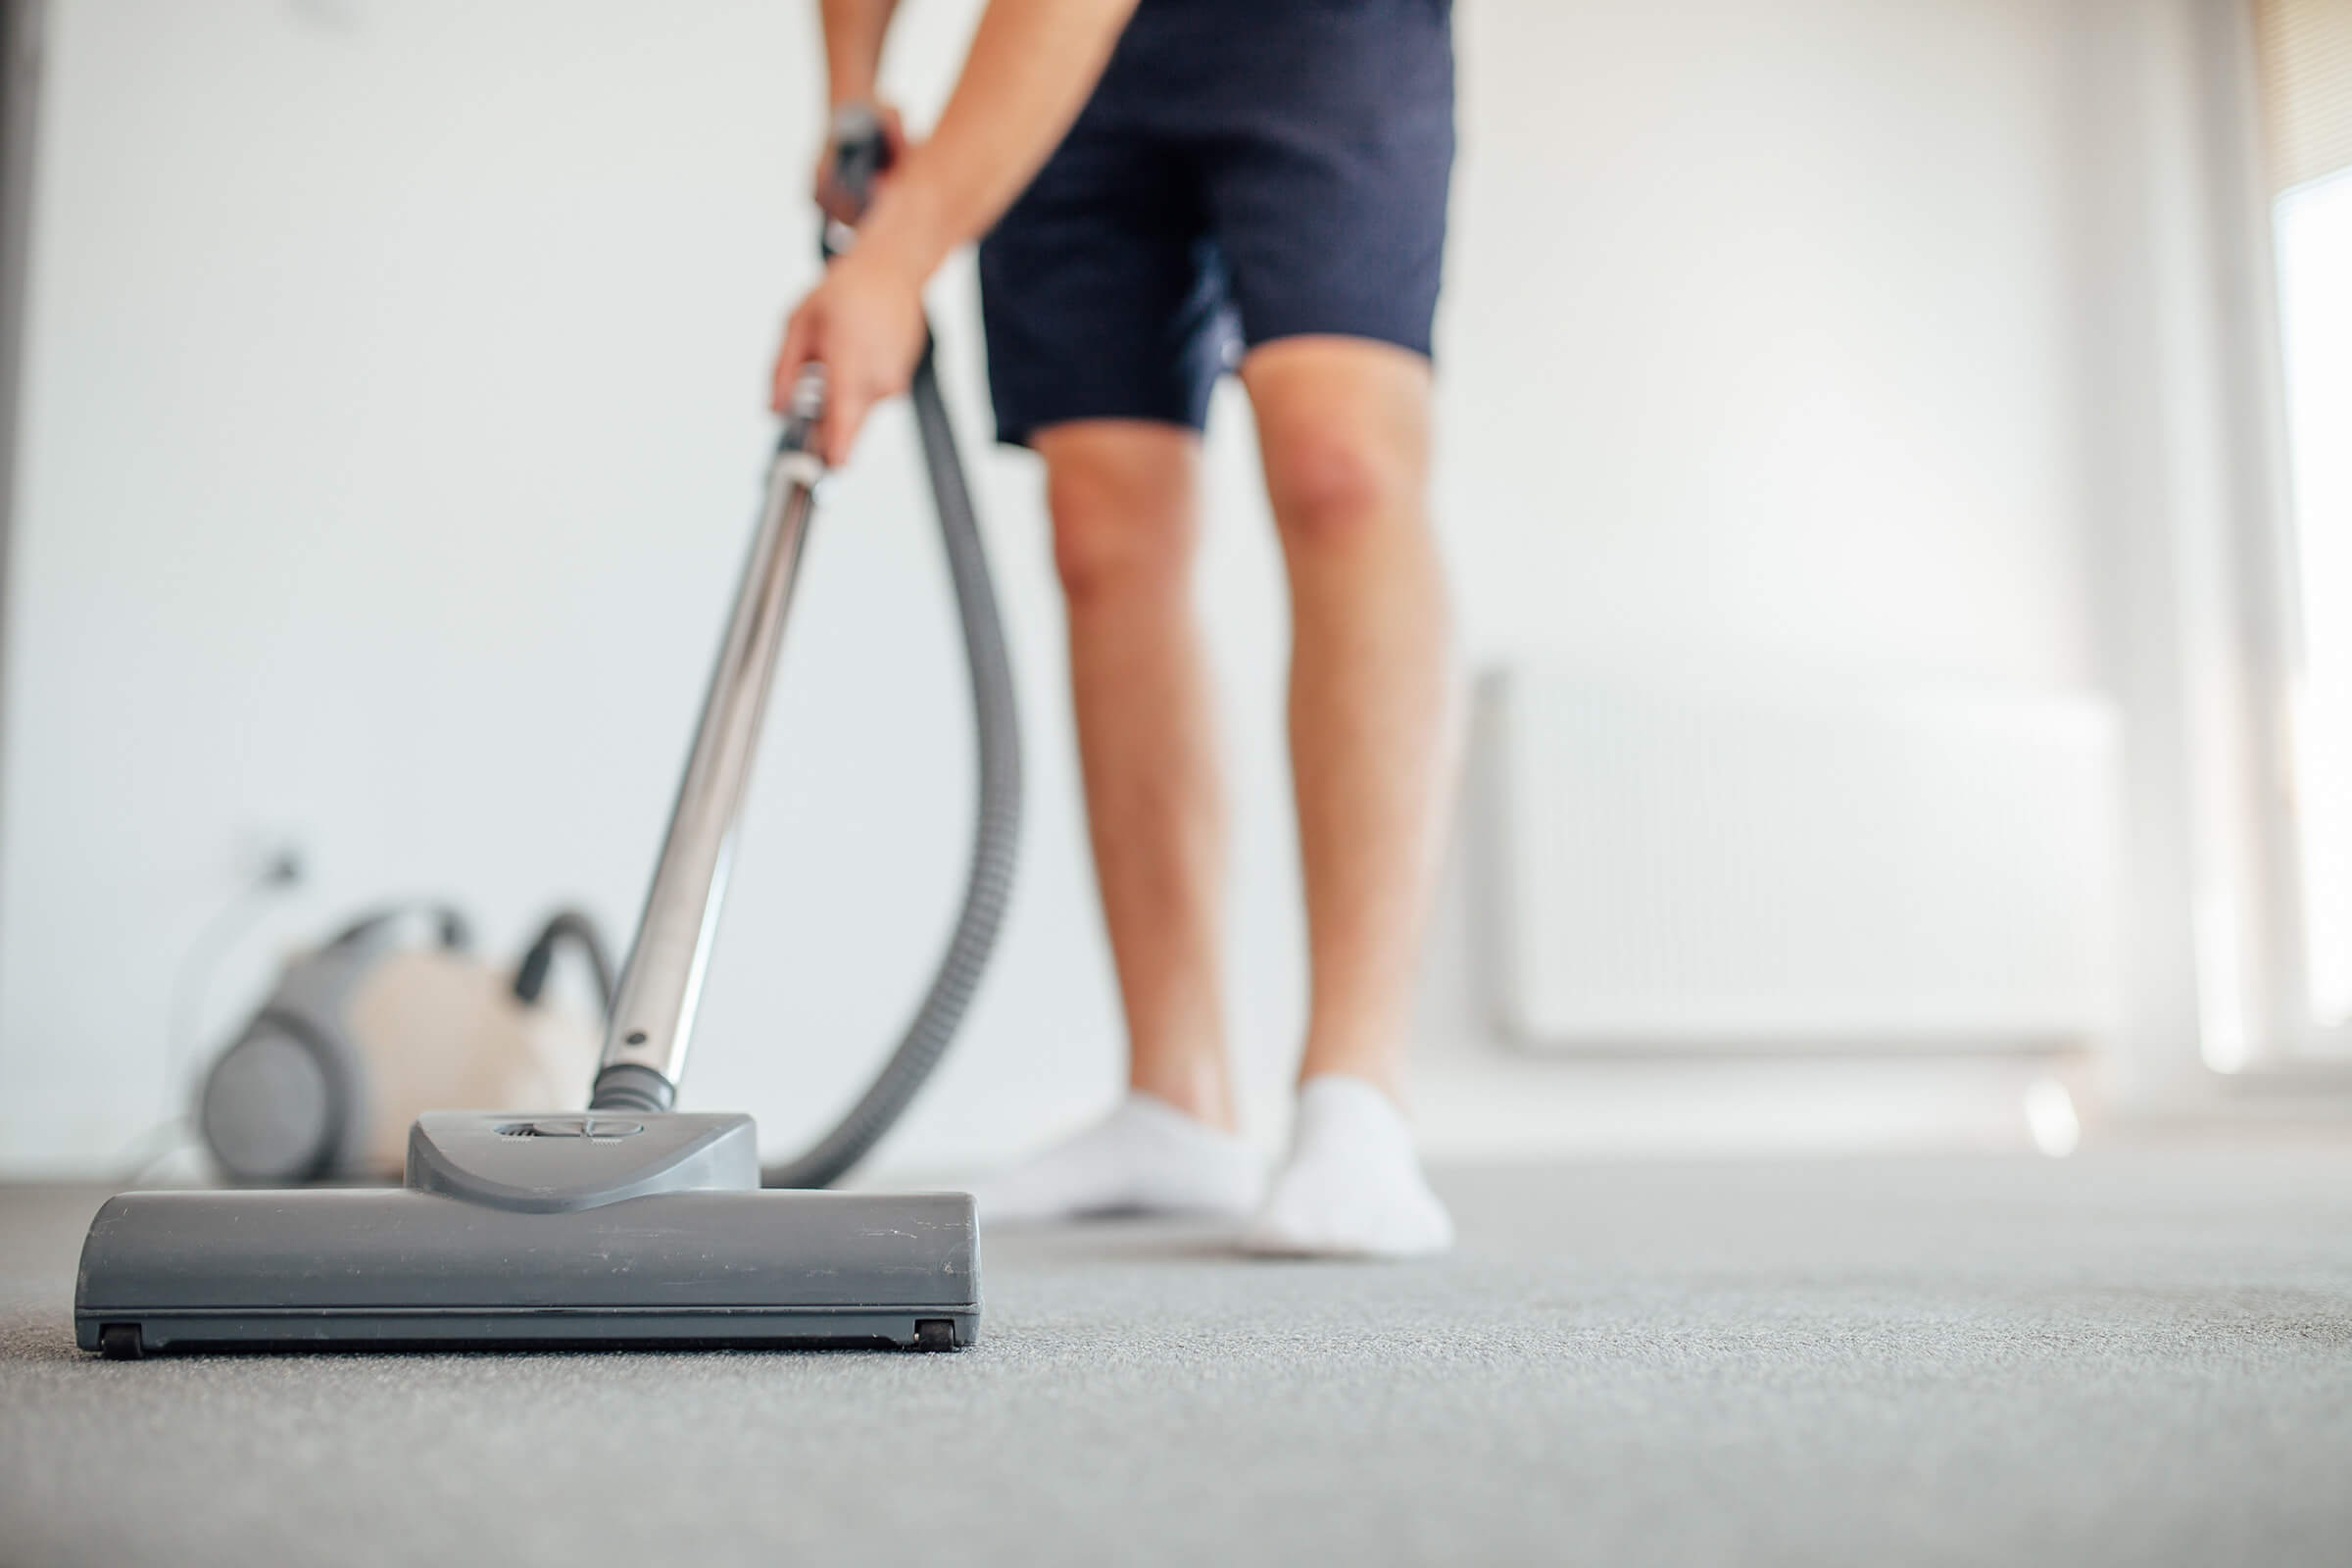 carpet cleaning manhattan ny carpet cleaner manhattan ny rug cleaning manhattan ny rug cleaner manhattan ny green carpet cleaning manhattan ny Upholstery cleaning manhattan ny Upholstery manhattan ny Upholstery cleaner manhattan ny